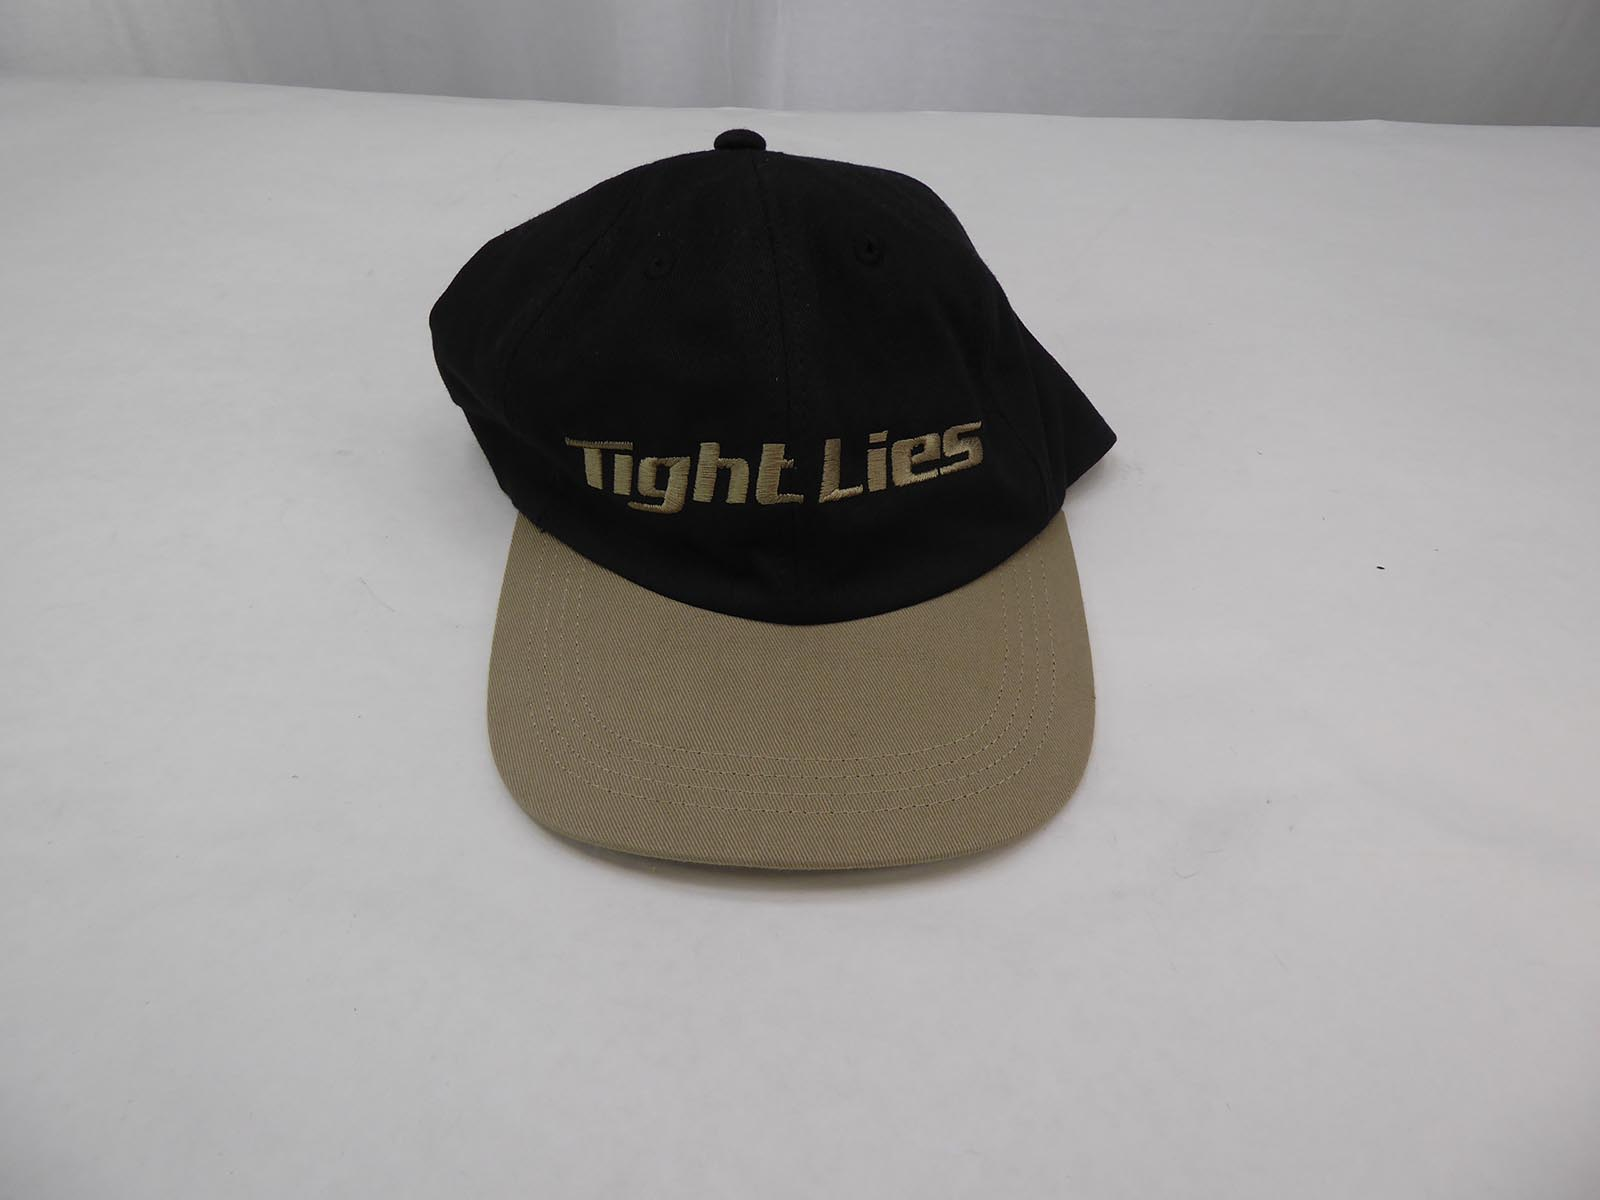 New Old Stock Adams Golf Tight Lies Hat Black Khaki Adjustable - One Size  Fits All Embroidered Made in USA! 250BK Might have some minor shelf wear dbd53ece44c